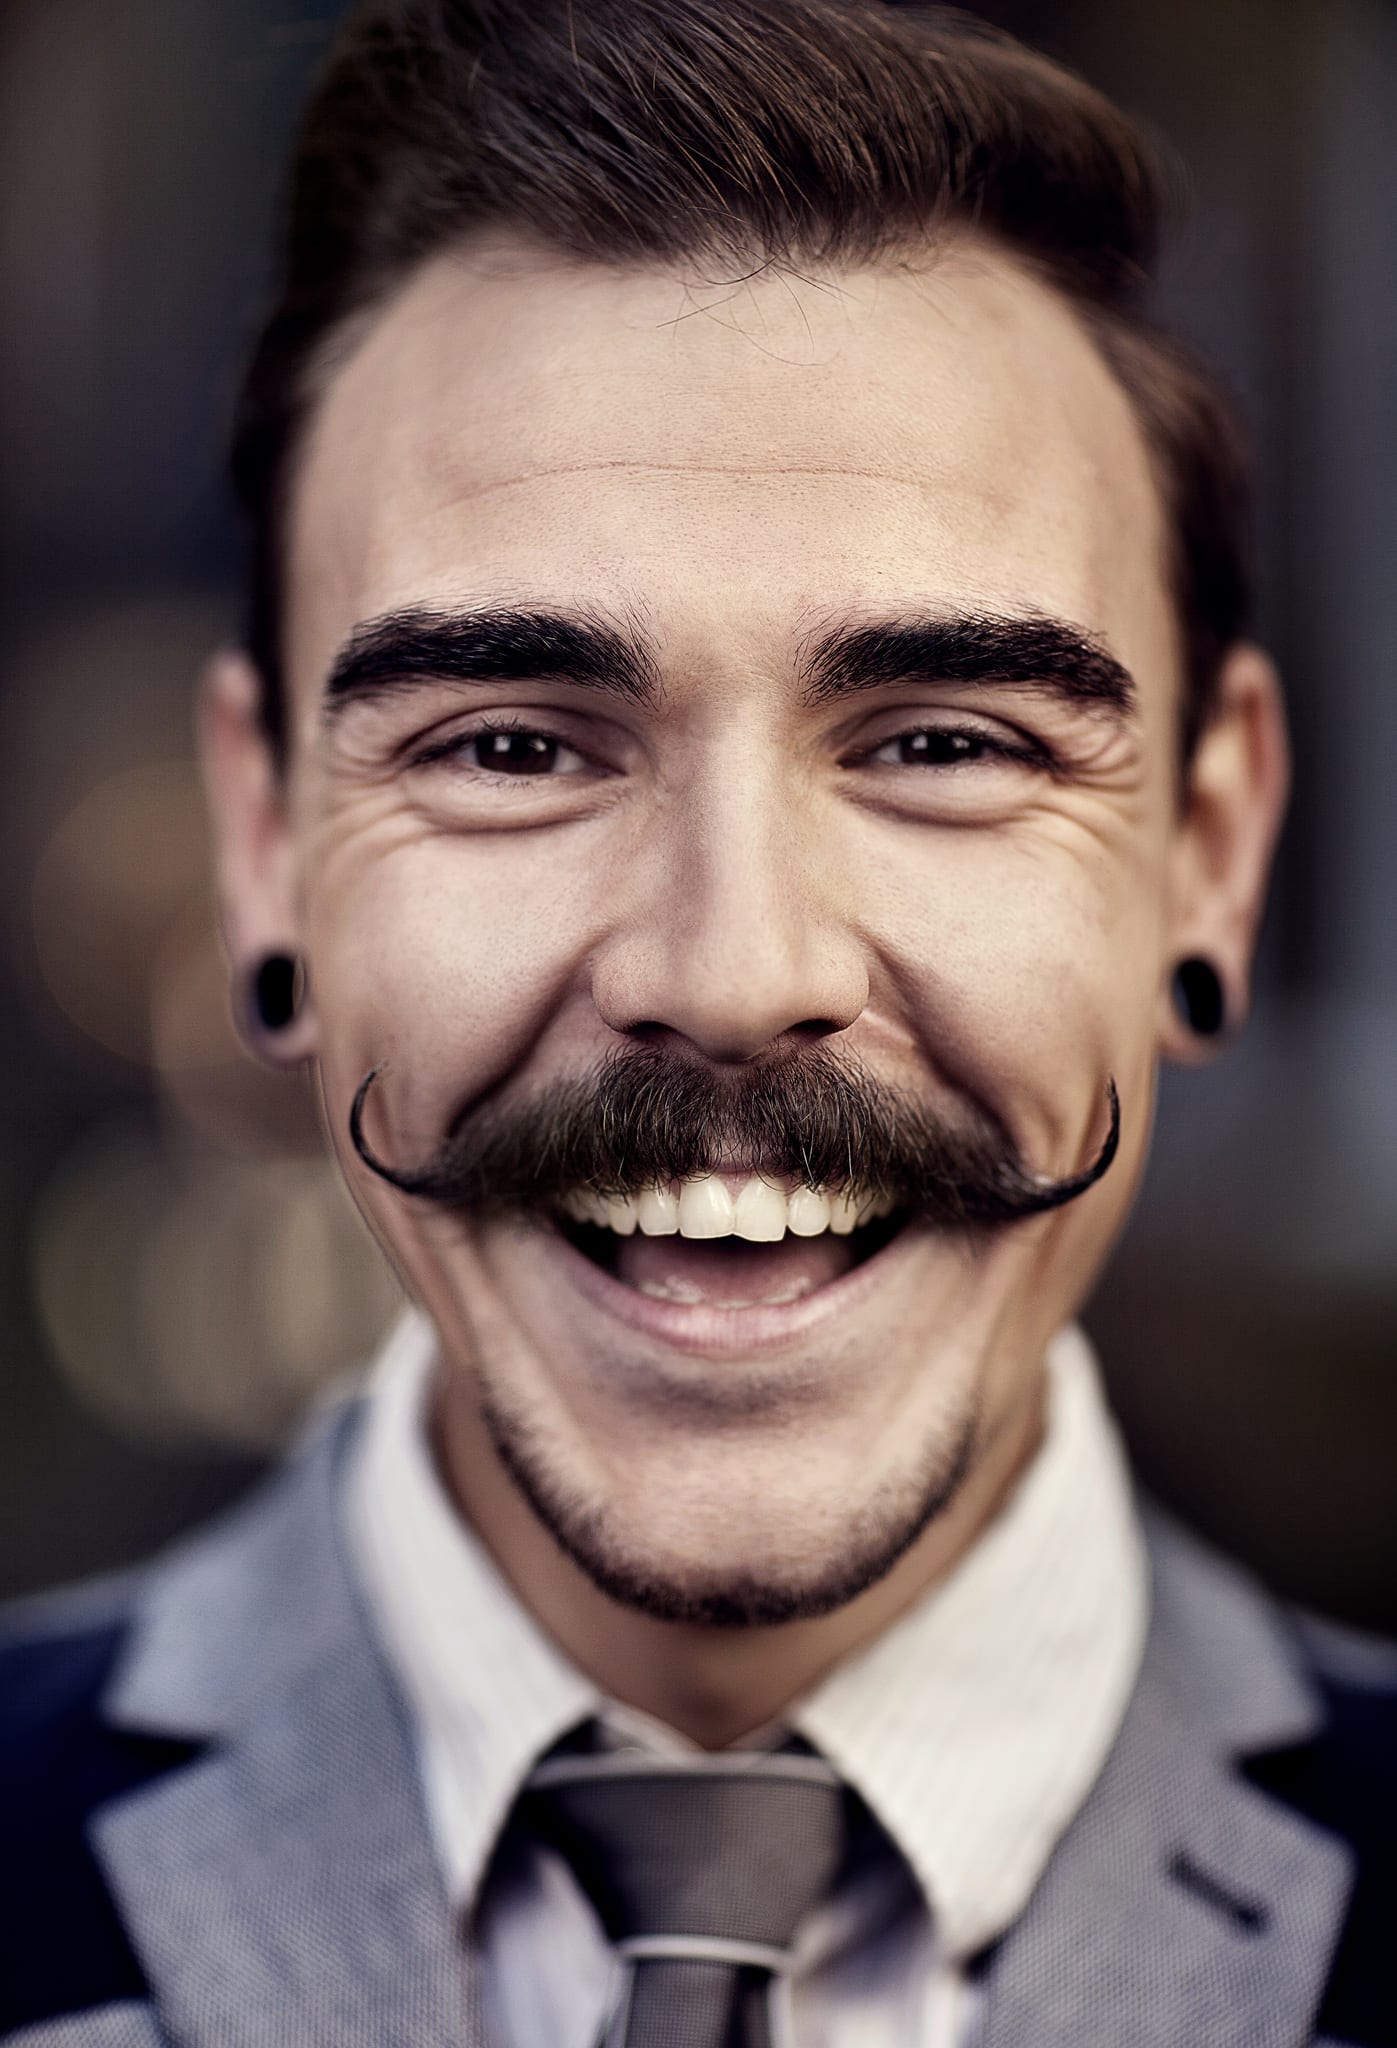 Moustache-Facial Hair Styles for men